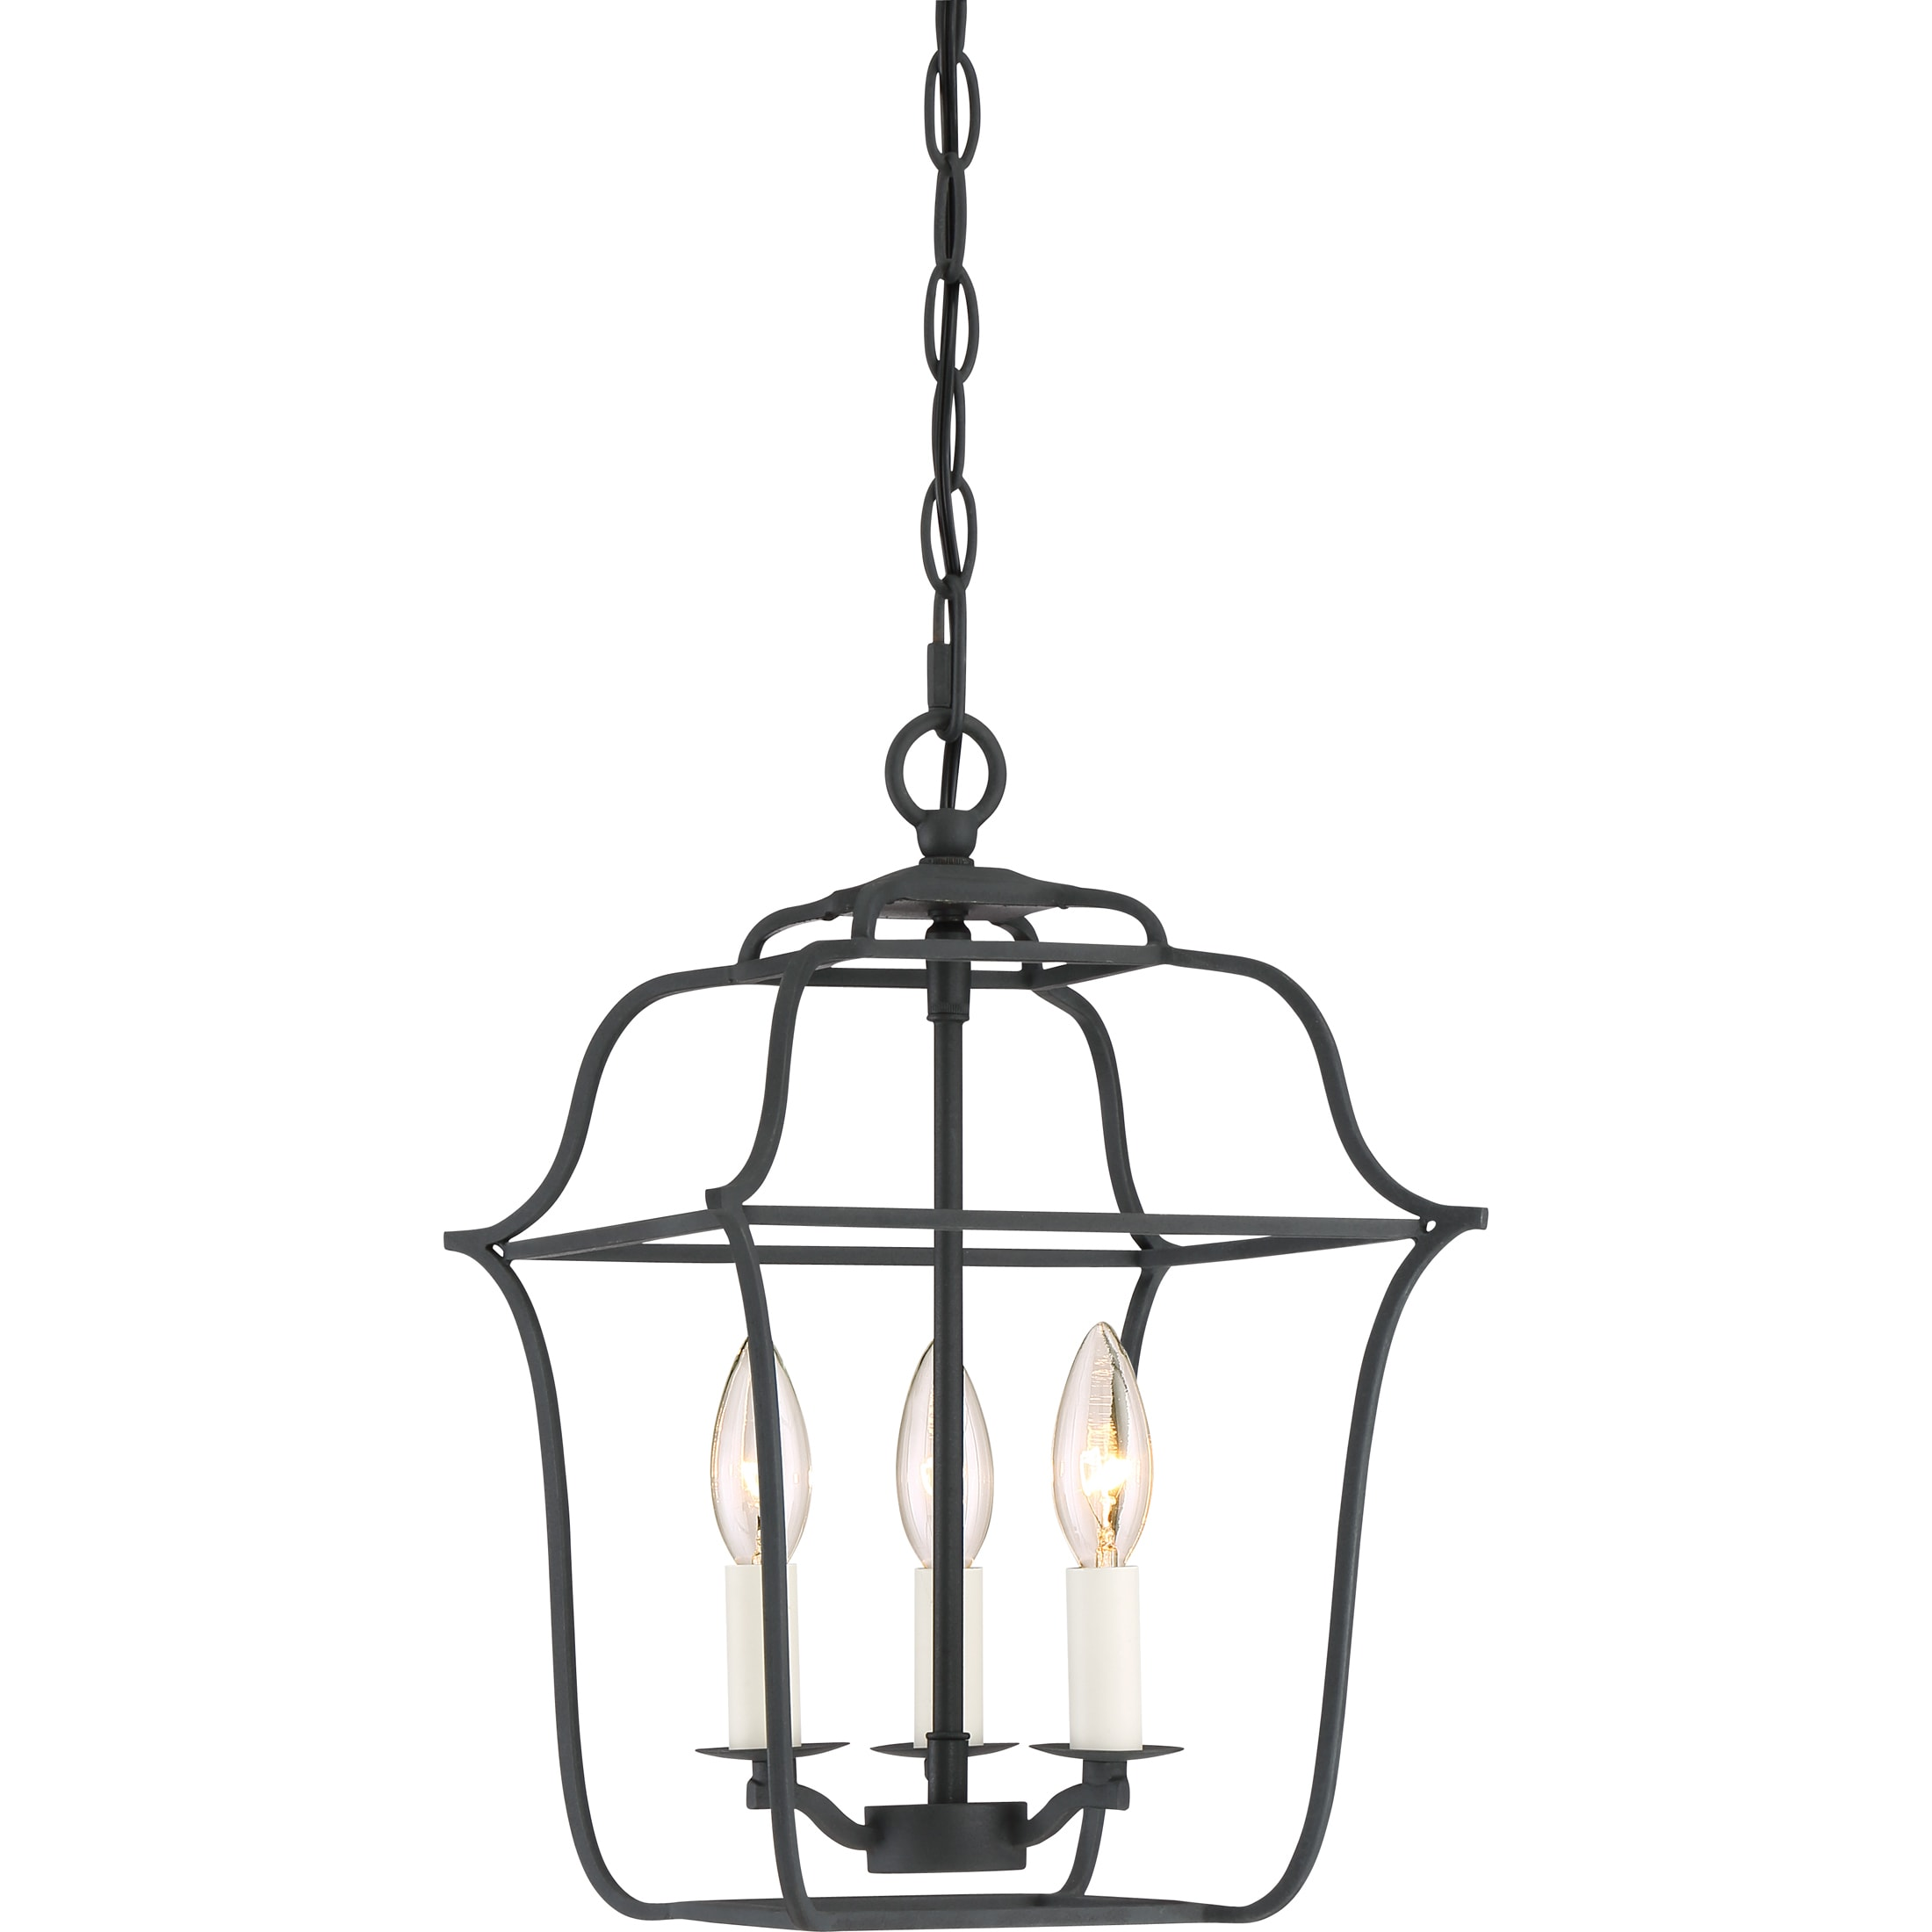 Quoizel Gallery Cage Chandelier With 3 Lights in Royal Ebony